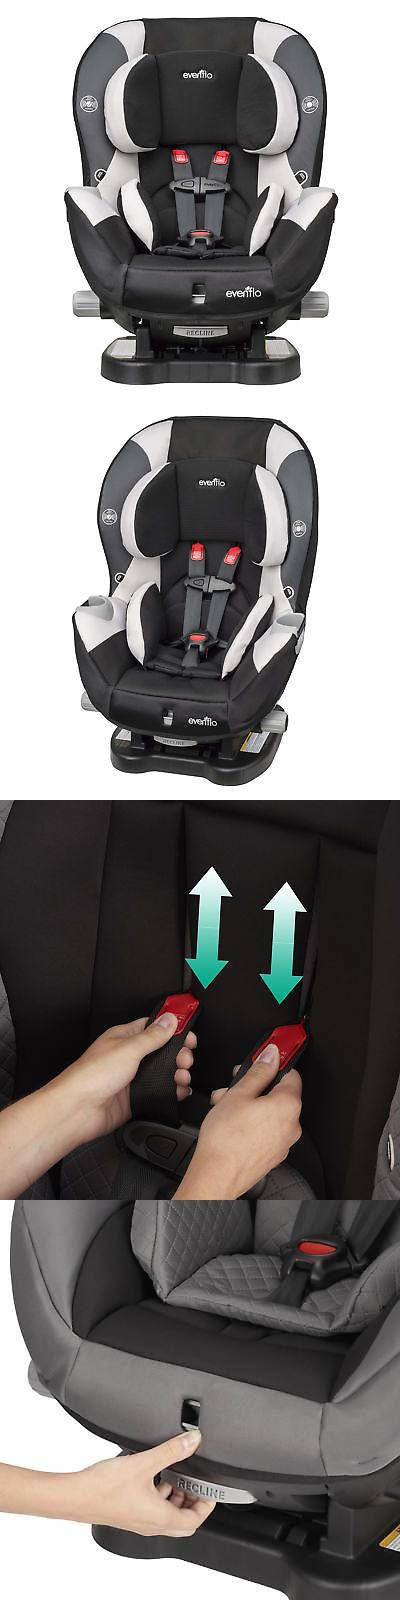 Convertible Car Seat 5 40lbs 66695 Evenflo Triumph Lx Baby Multiple Colors Free Shipping BUY IT NOW ONLY 14999 On EBay